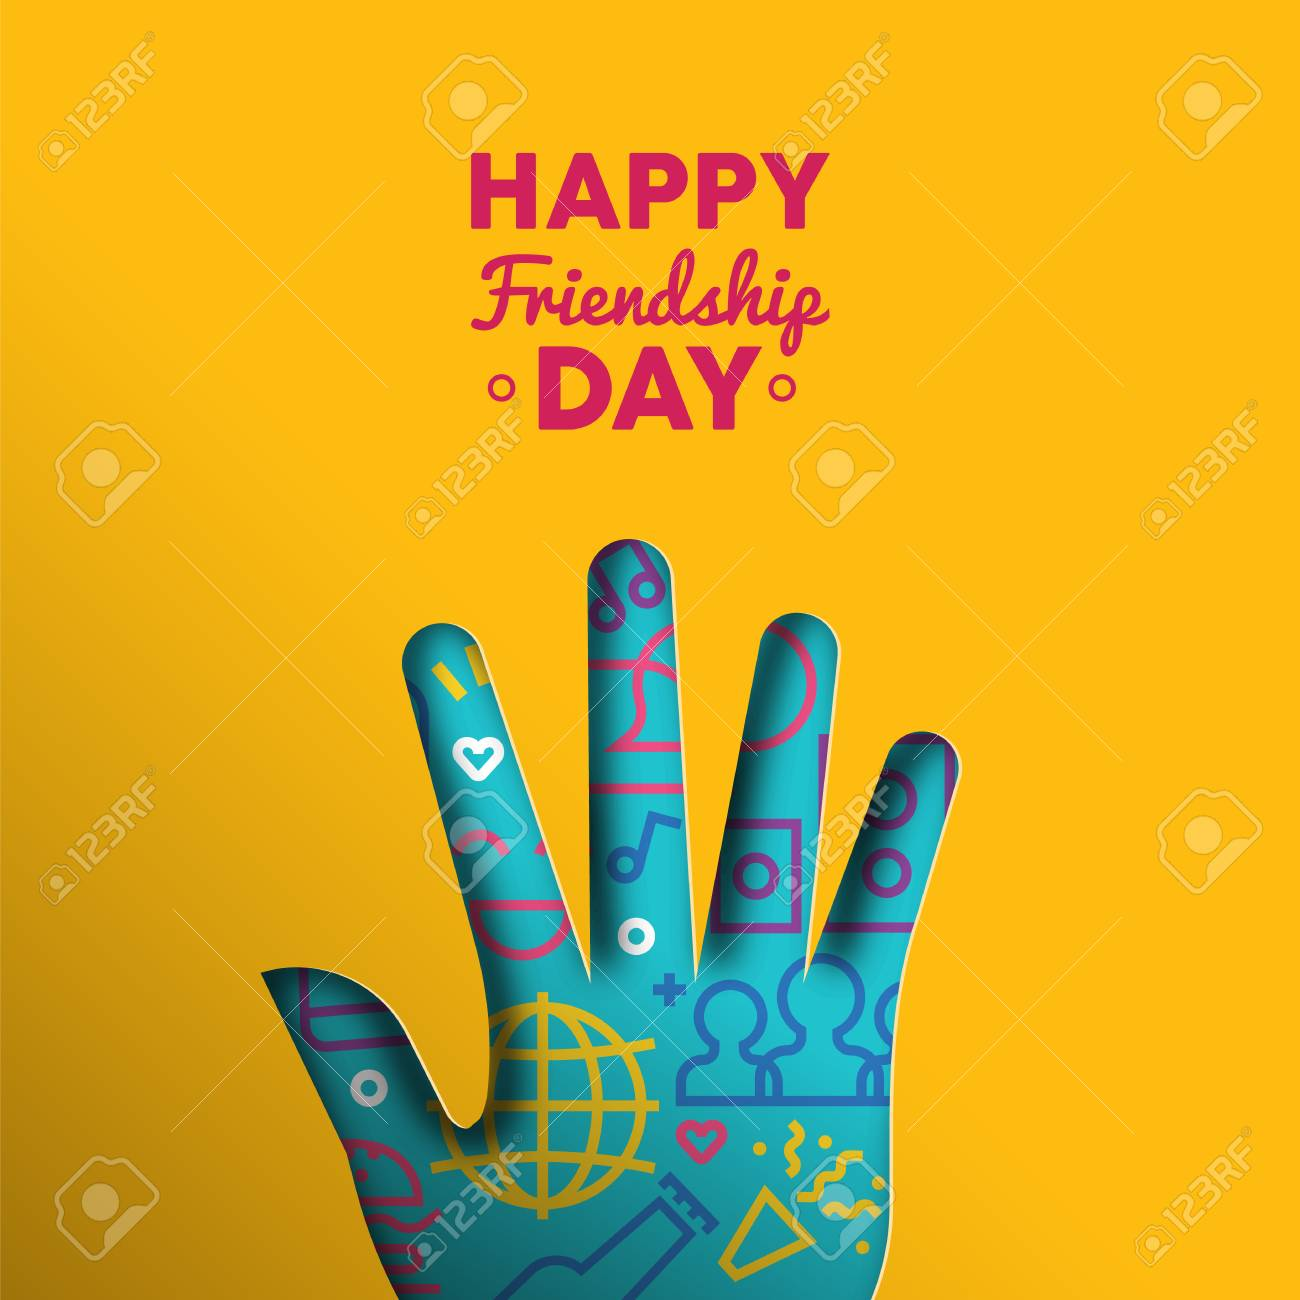 Happy Friendship Day Greeting Card Illustration Paper Cut Hand